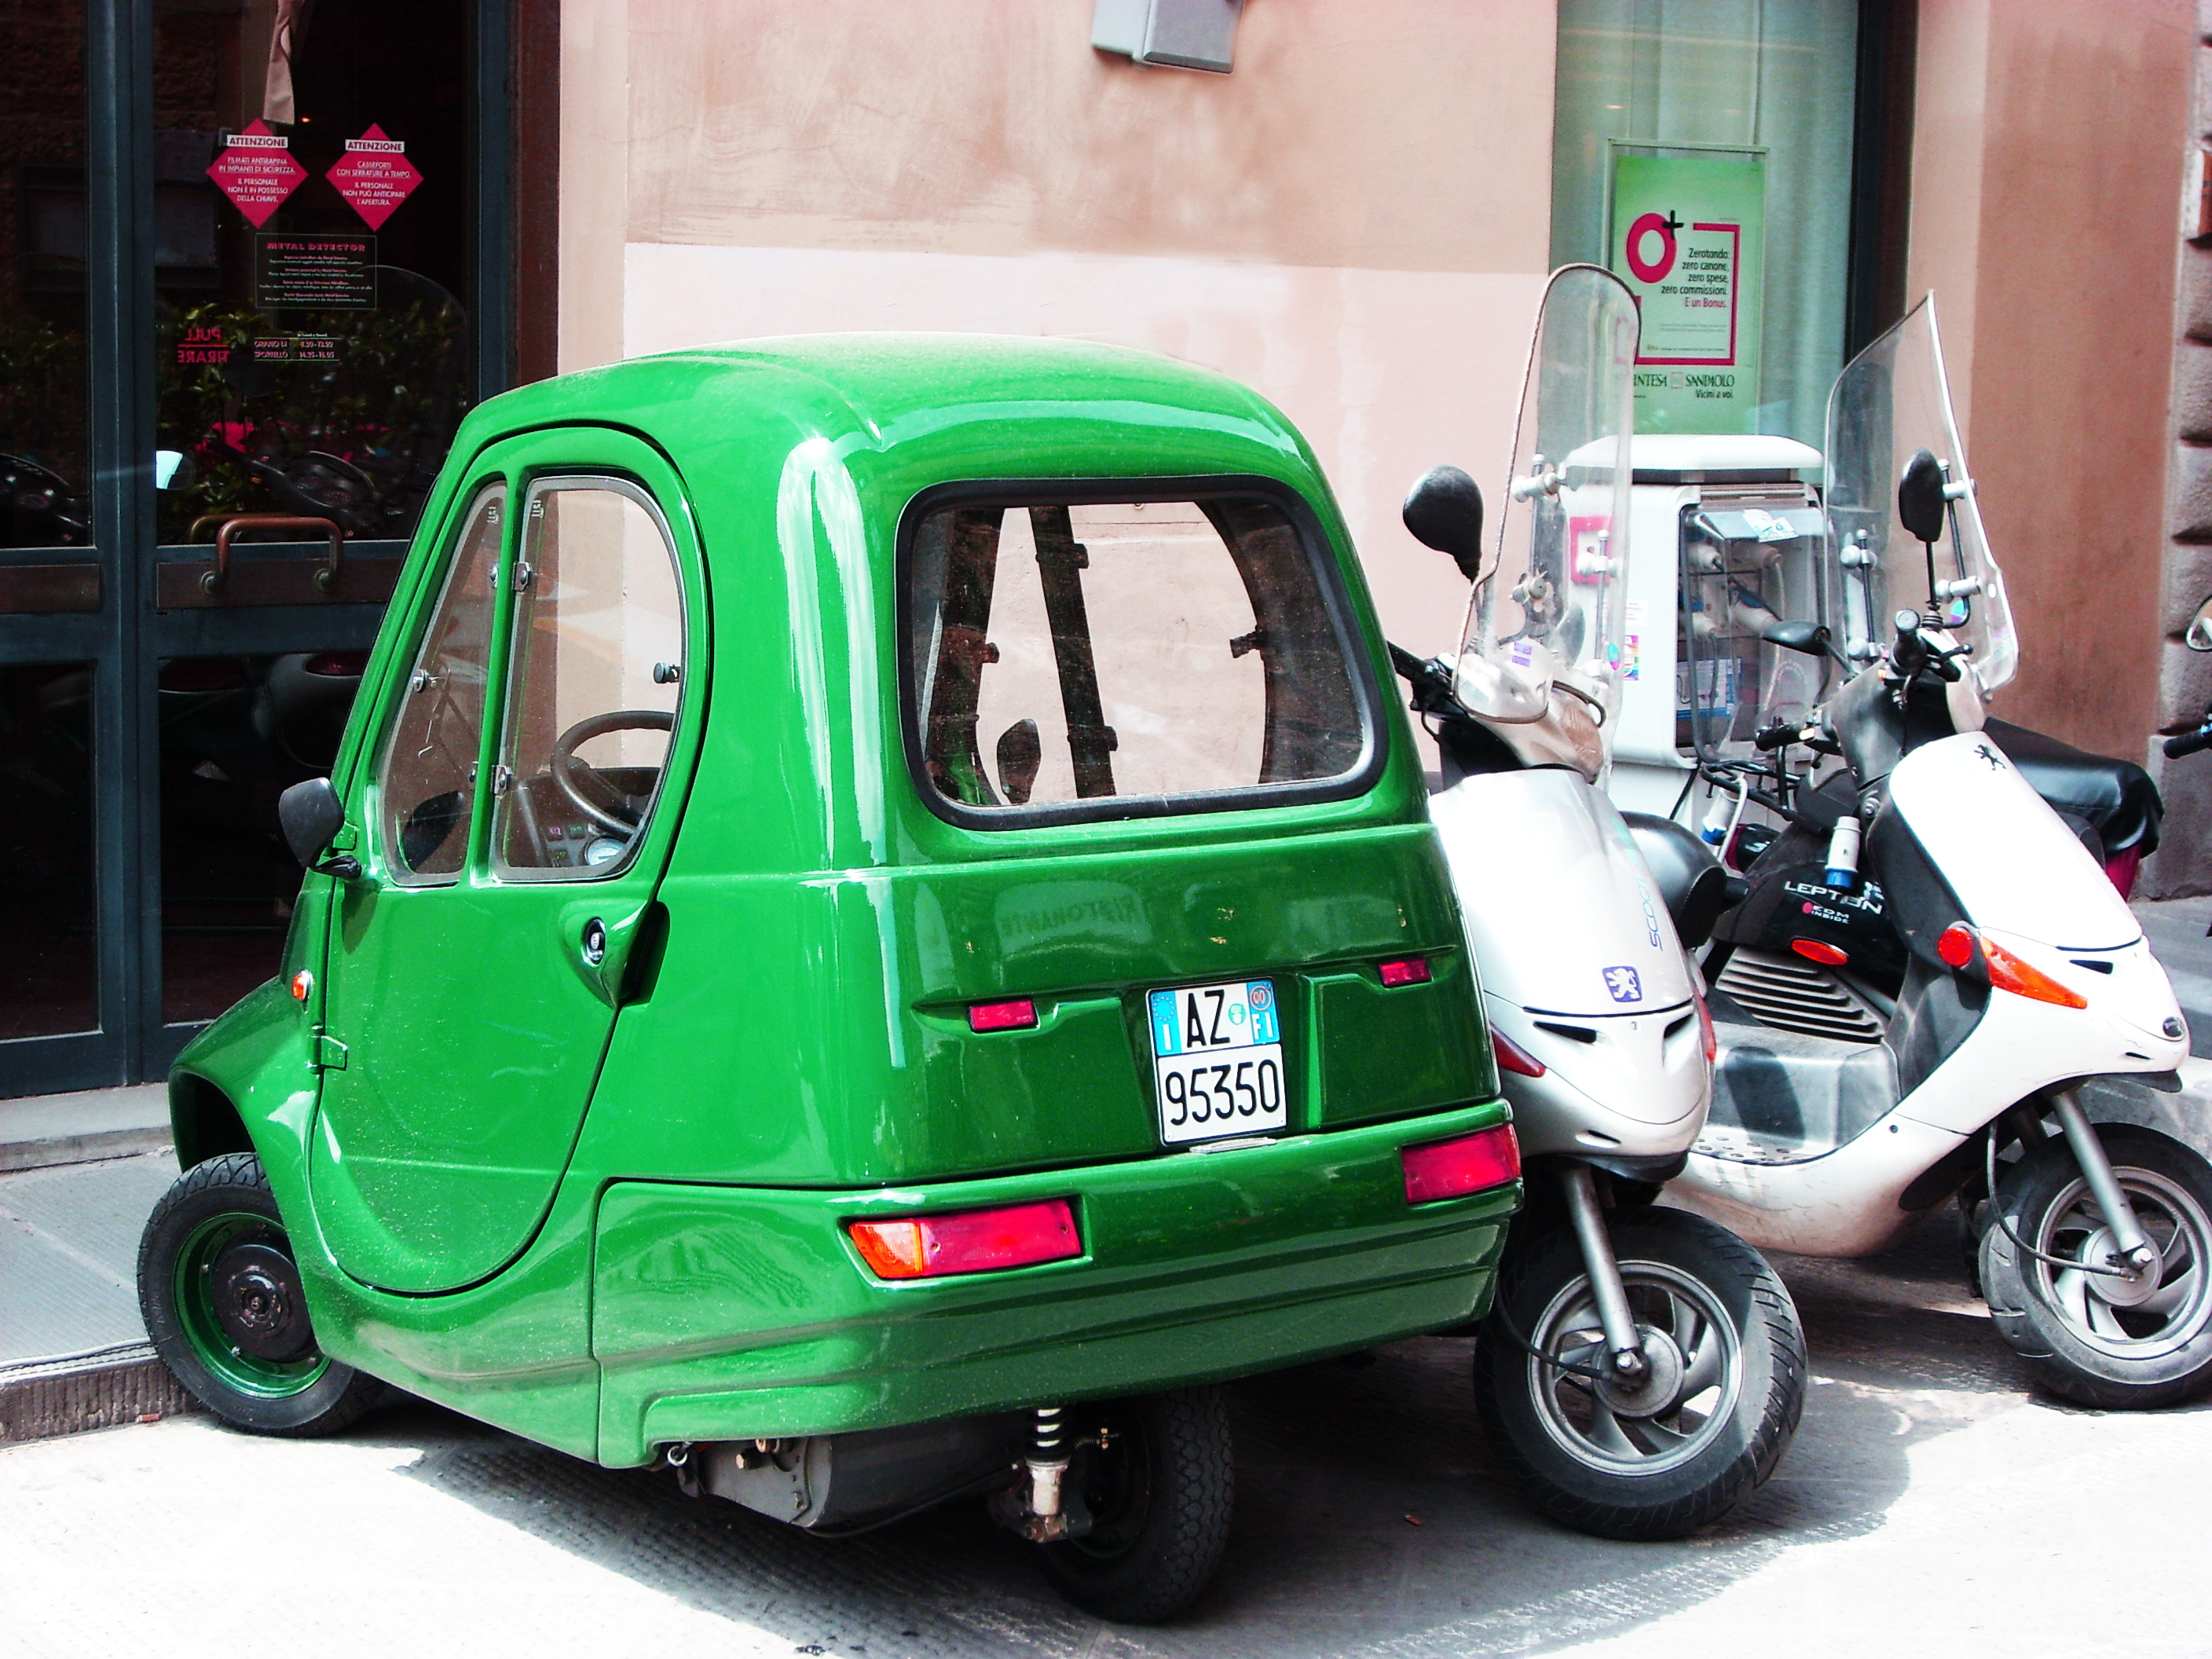 green smart car in florence italy